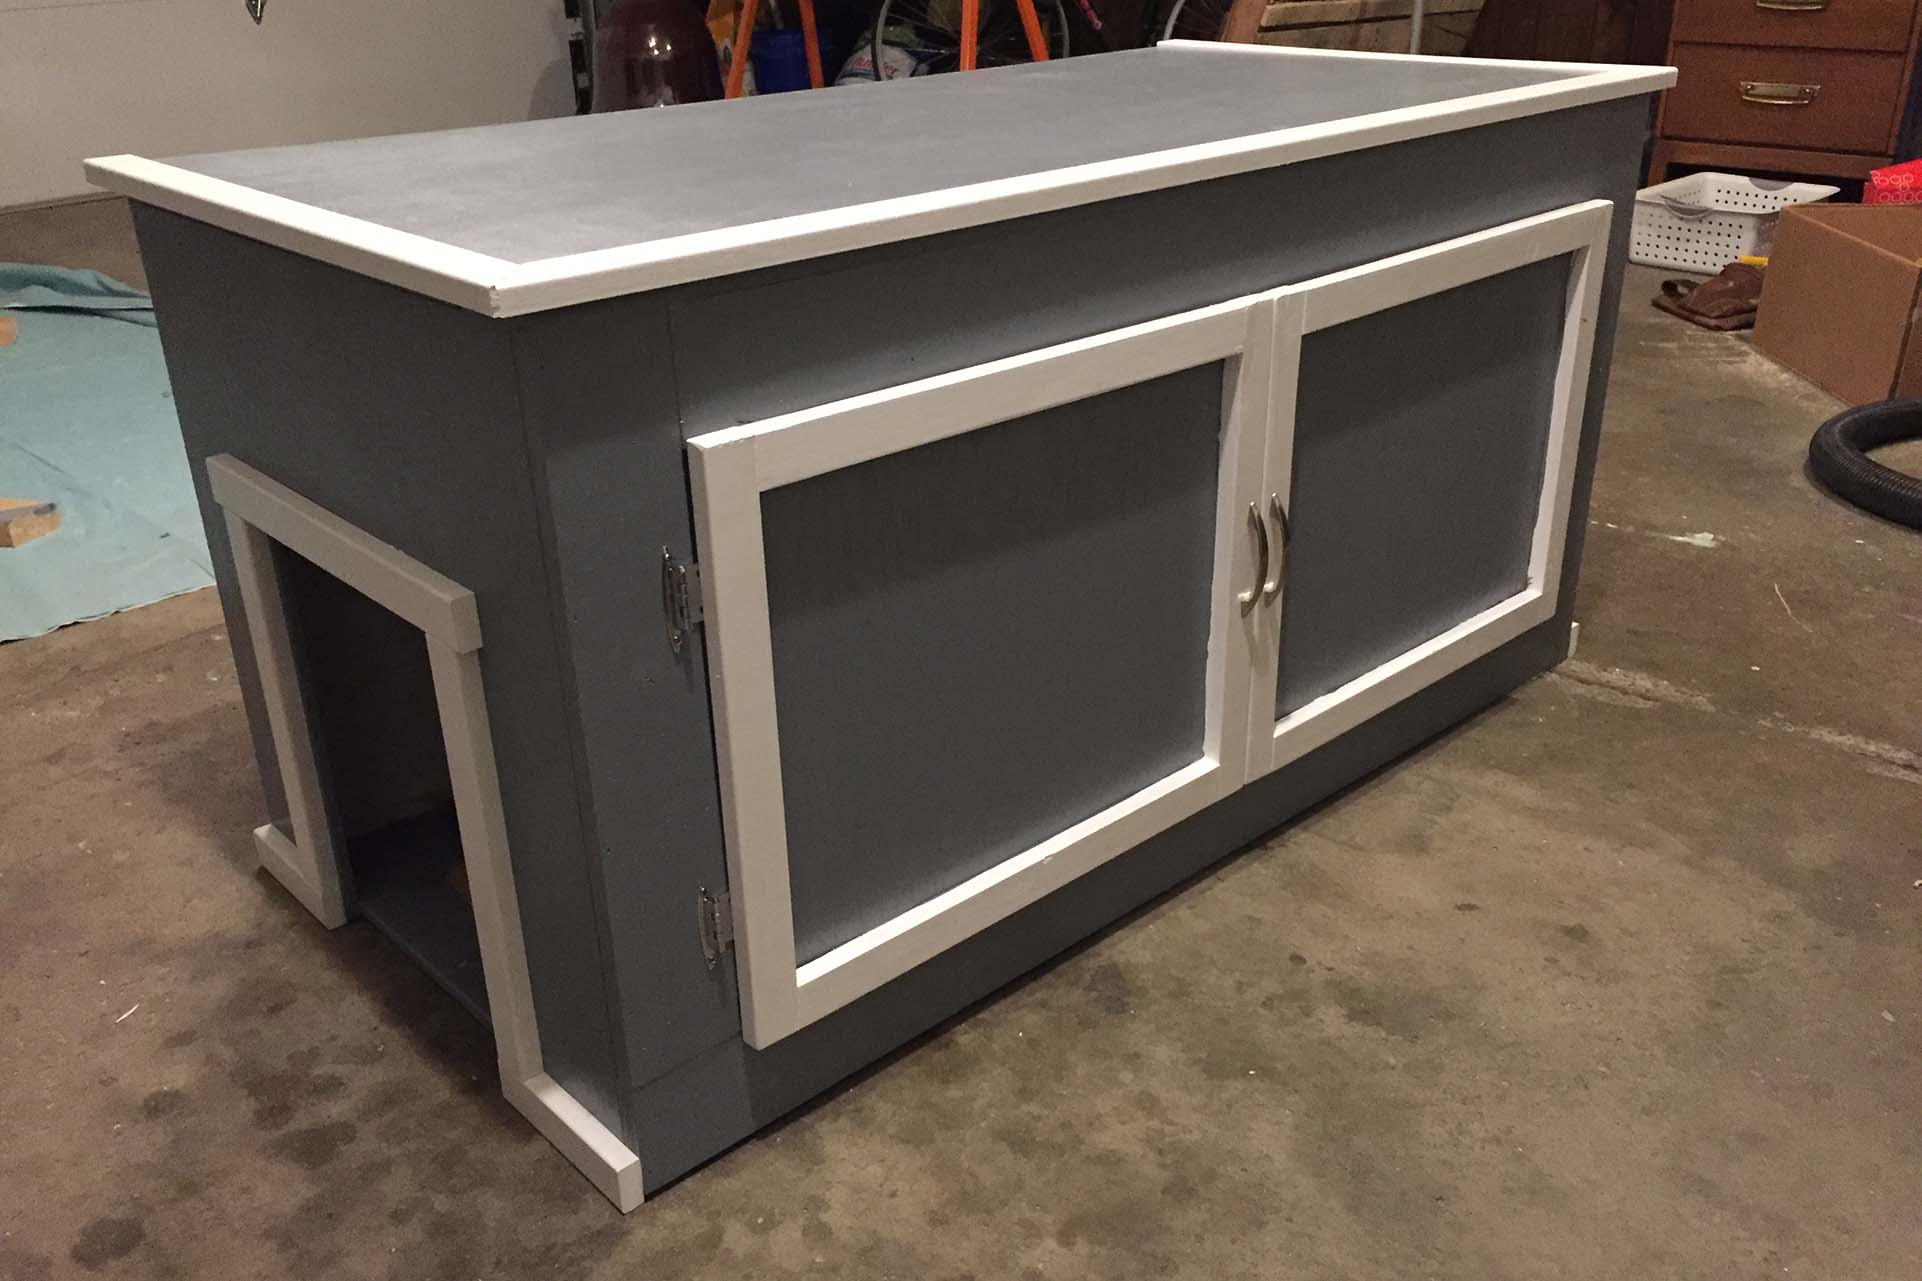 Cat litter box enclosure made from plywood